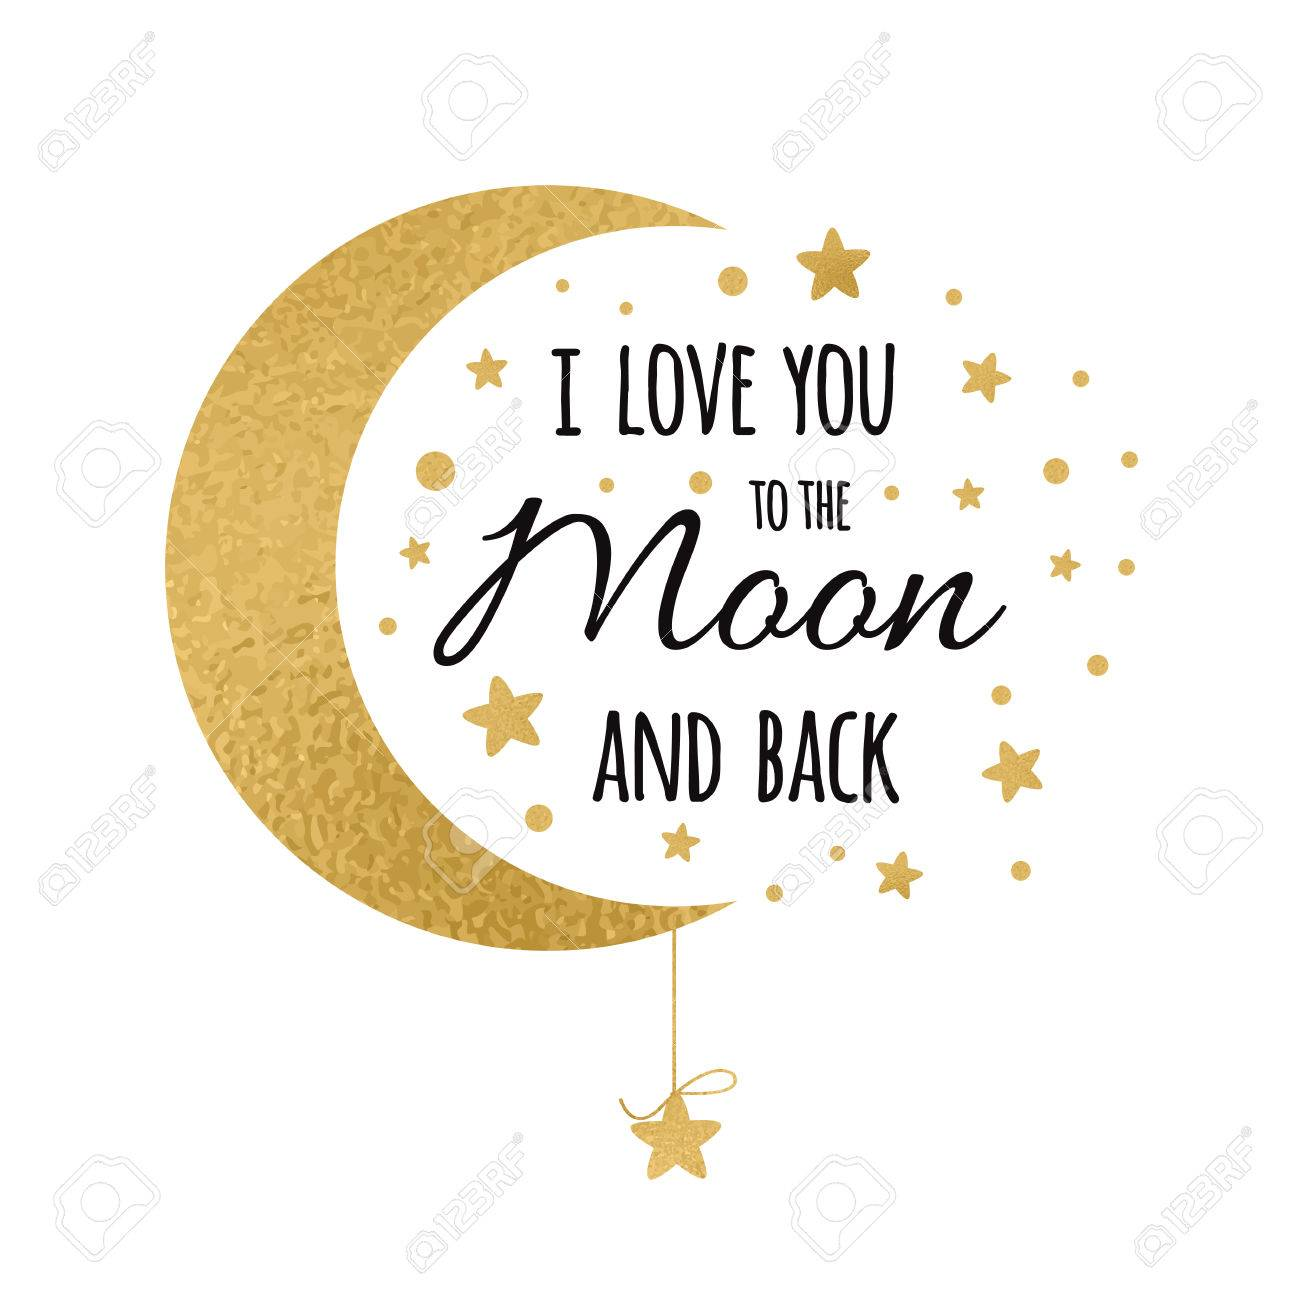 I love you to the moon and back. Handwritten inspirational phrase...